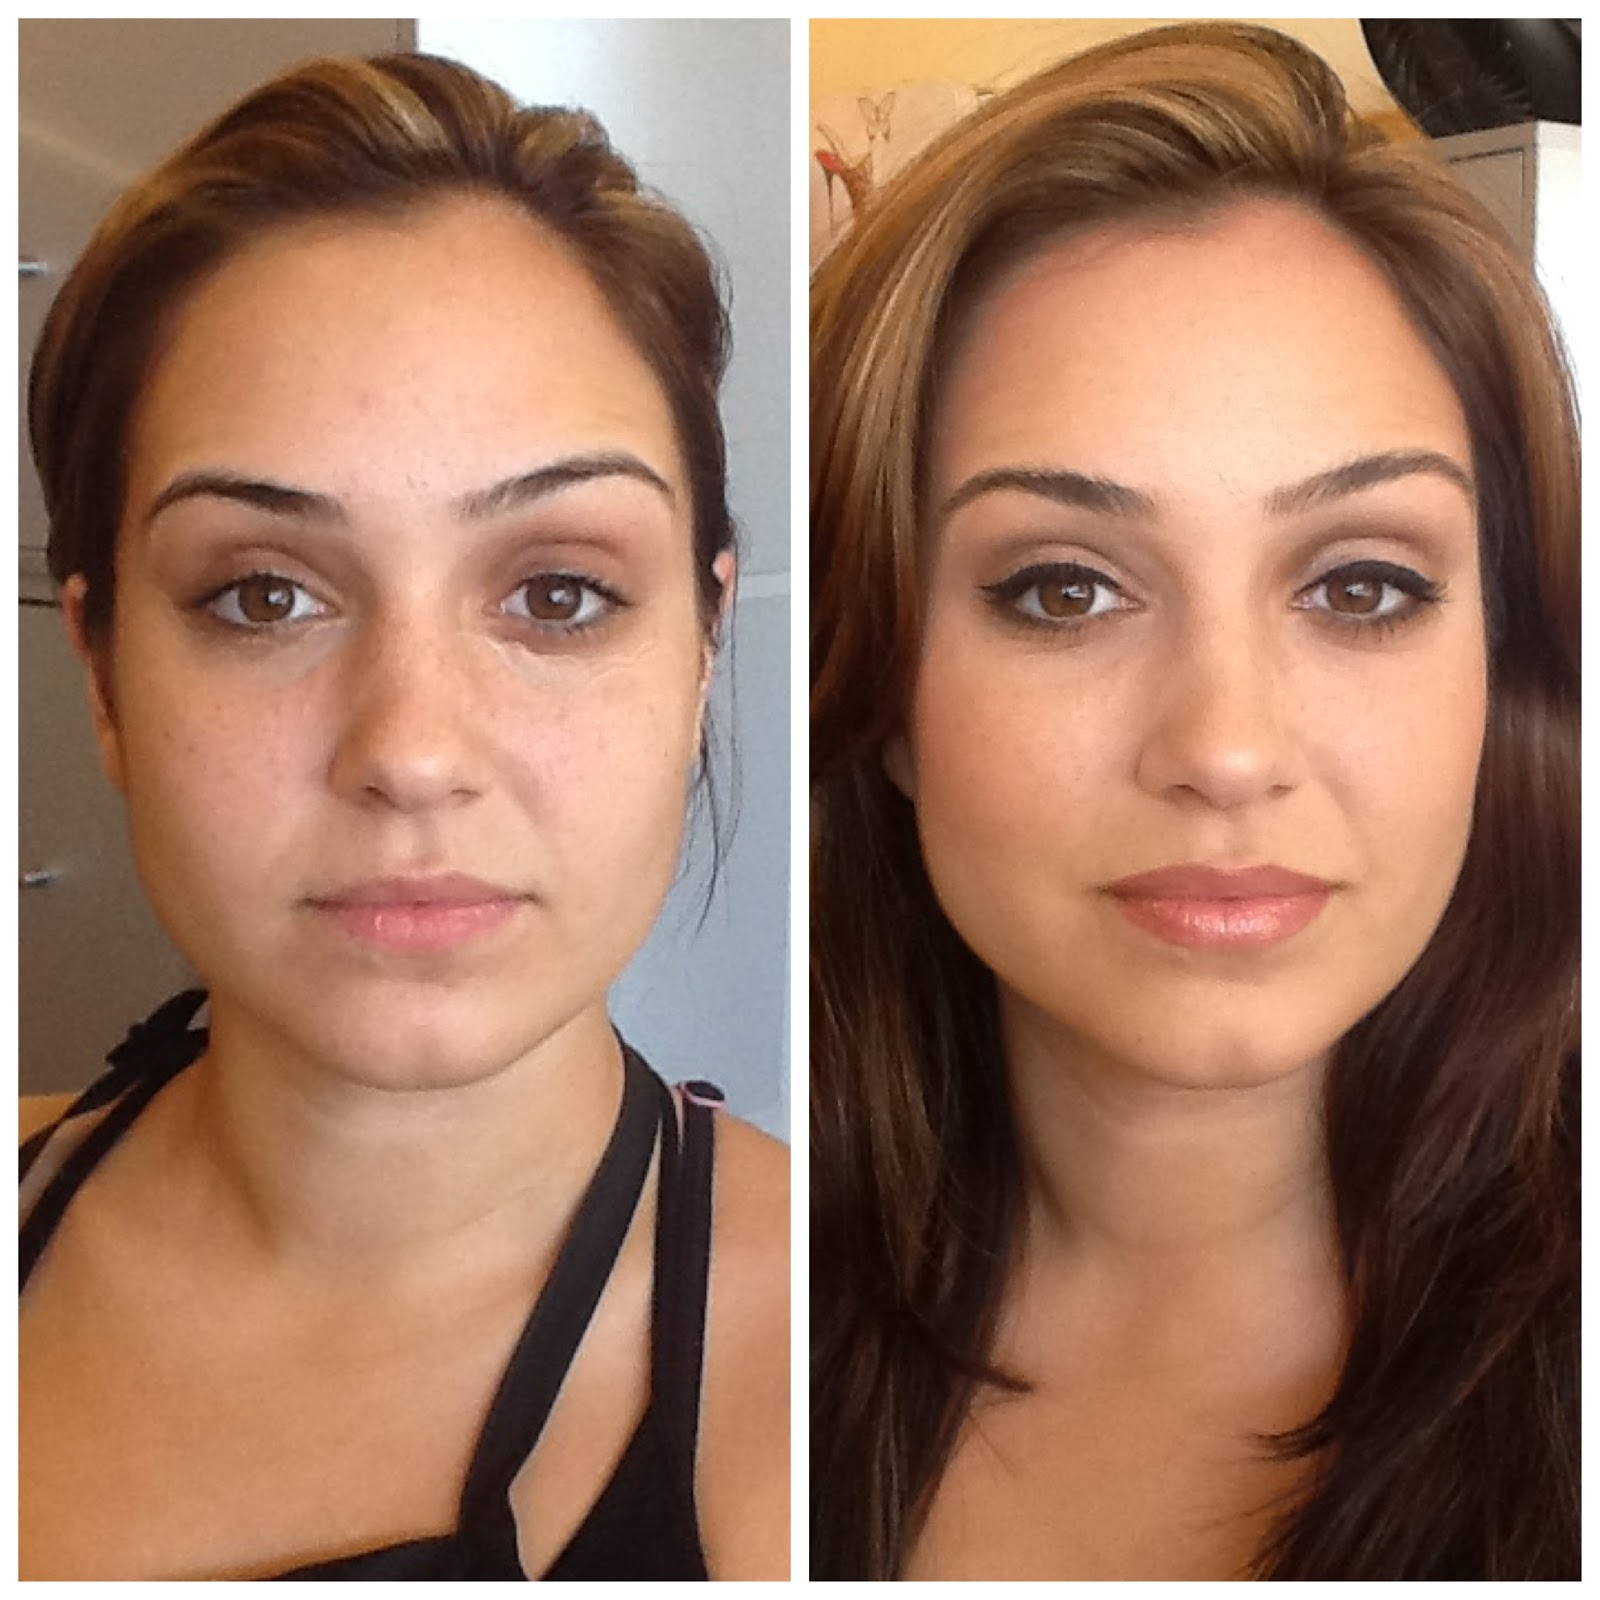 Makeup Sorcery? A Gallery Of SHOCKING Before/After Pics | Bossip